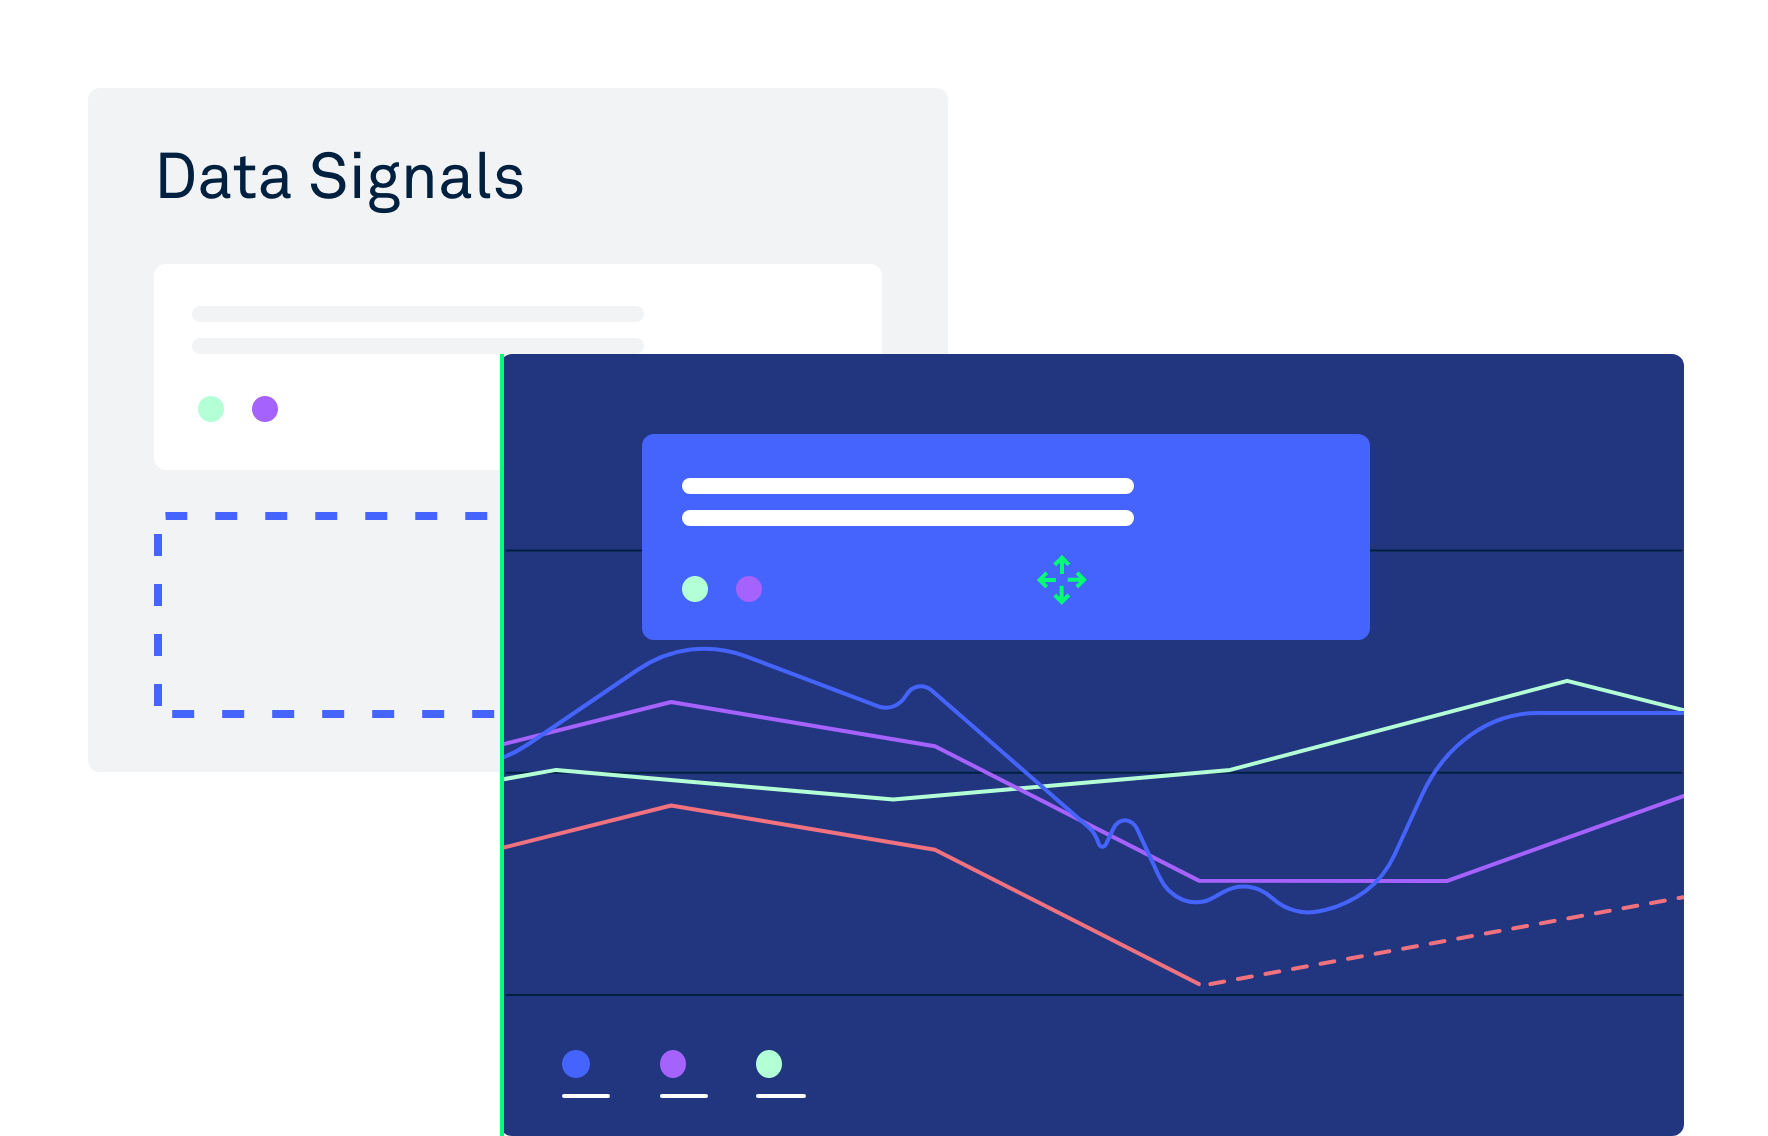 Illustrating how you can easily drag and drop data signals in Clarify